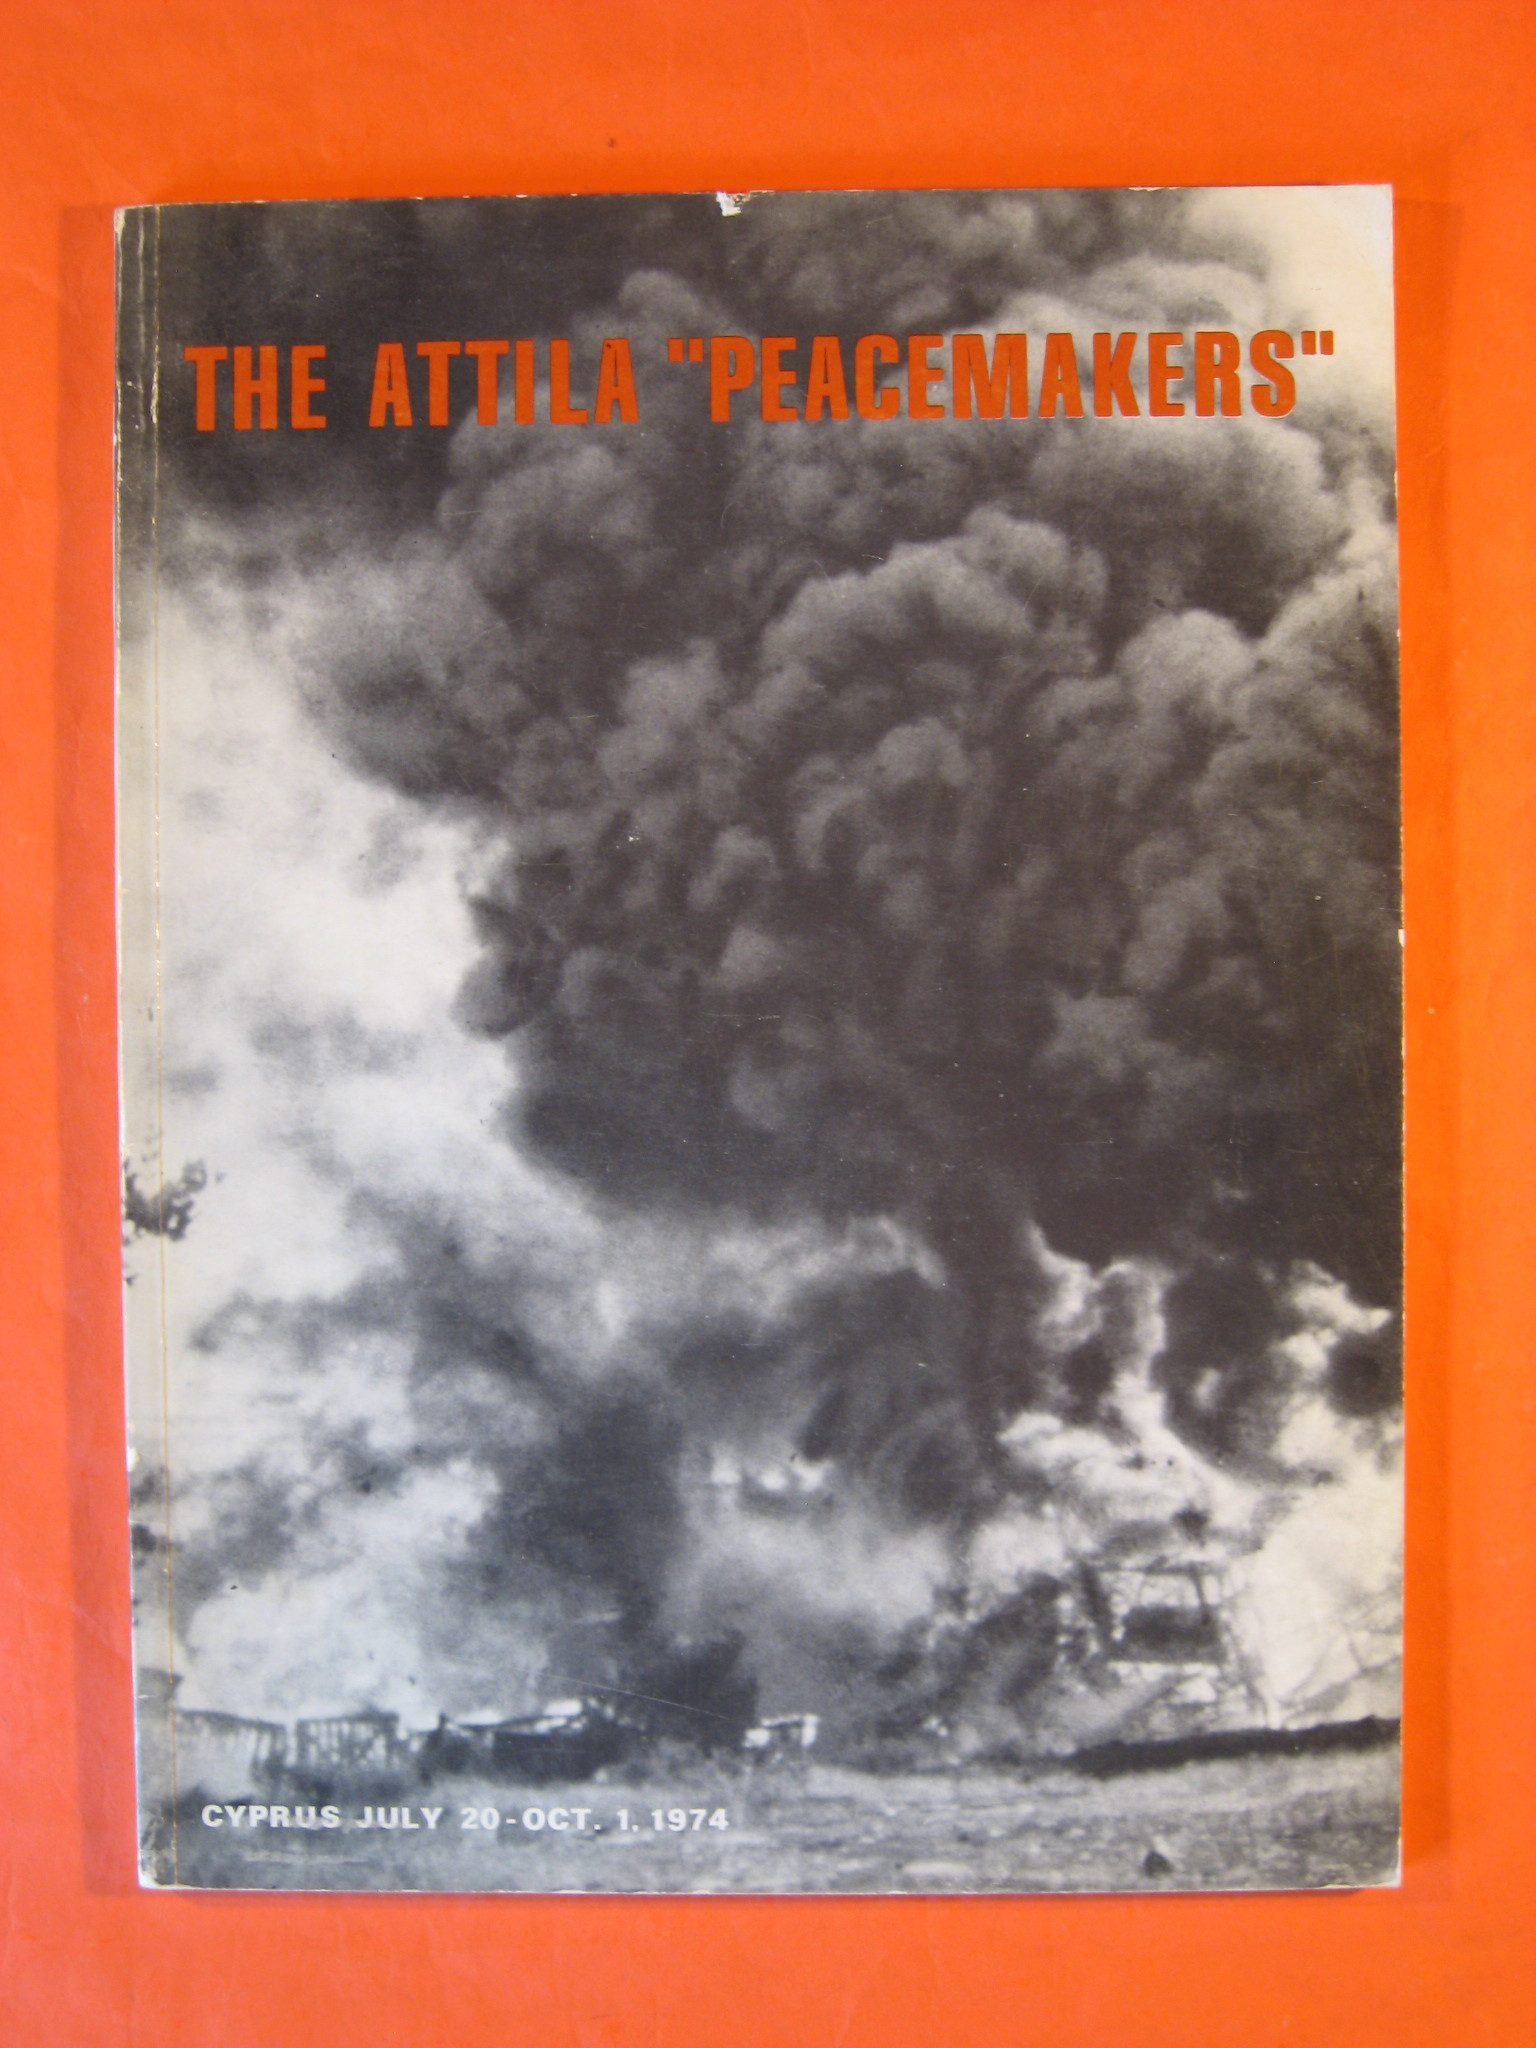 """Image for Attila """"Peacemakers"""" Cyprus July 20 - Oct. 1 1974, The"""